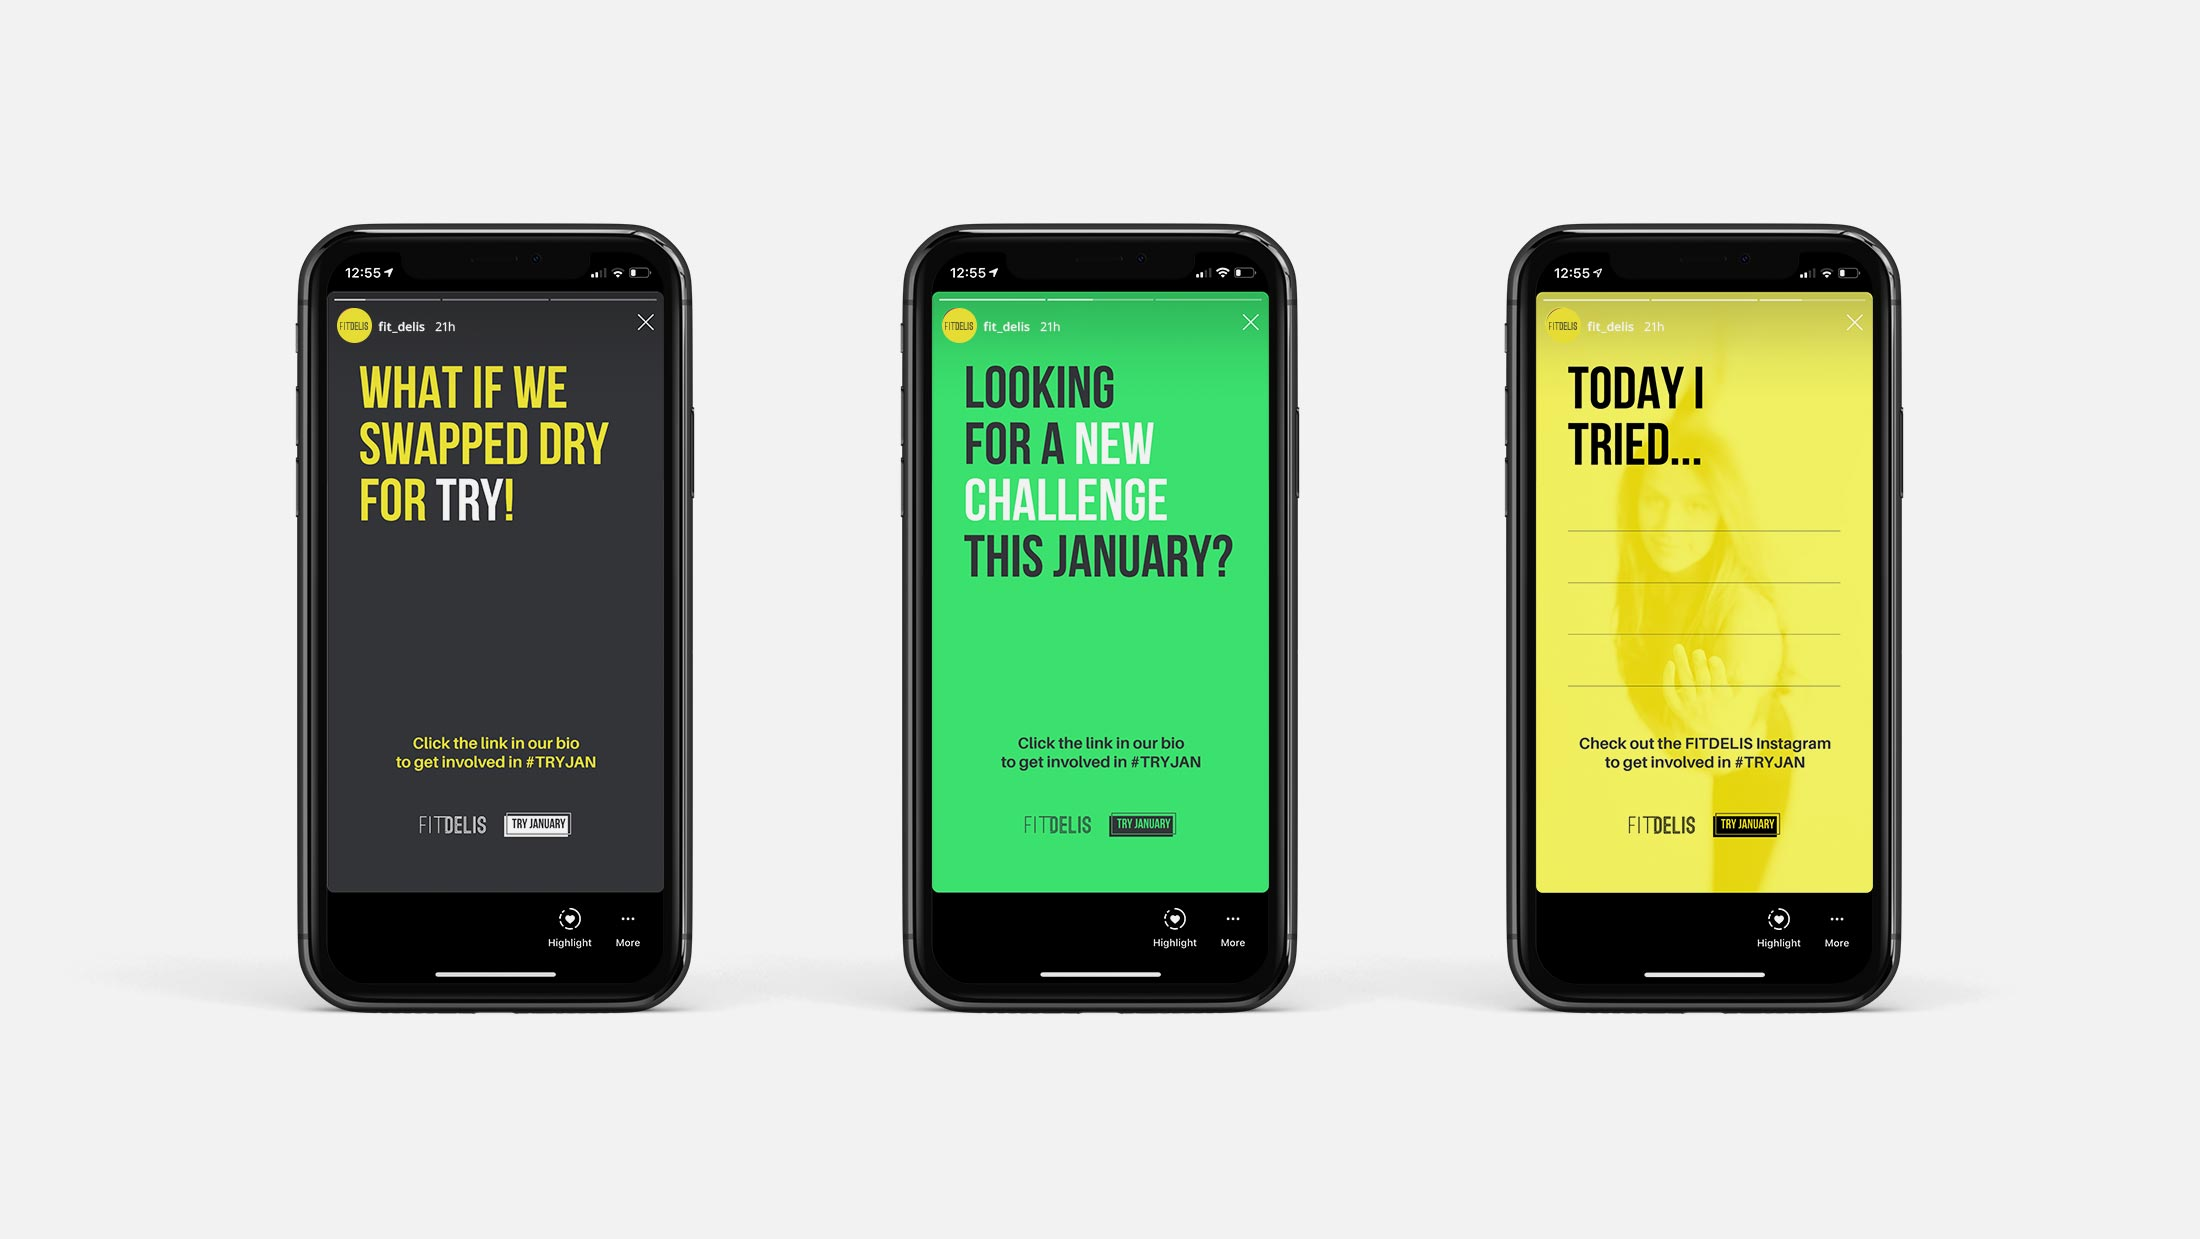 Mobile phone mockups showing Instagram stories for Fit Delis' Try January campaign